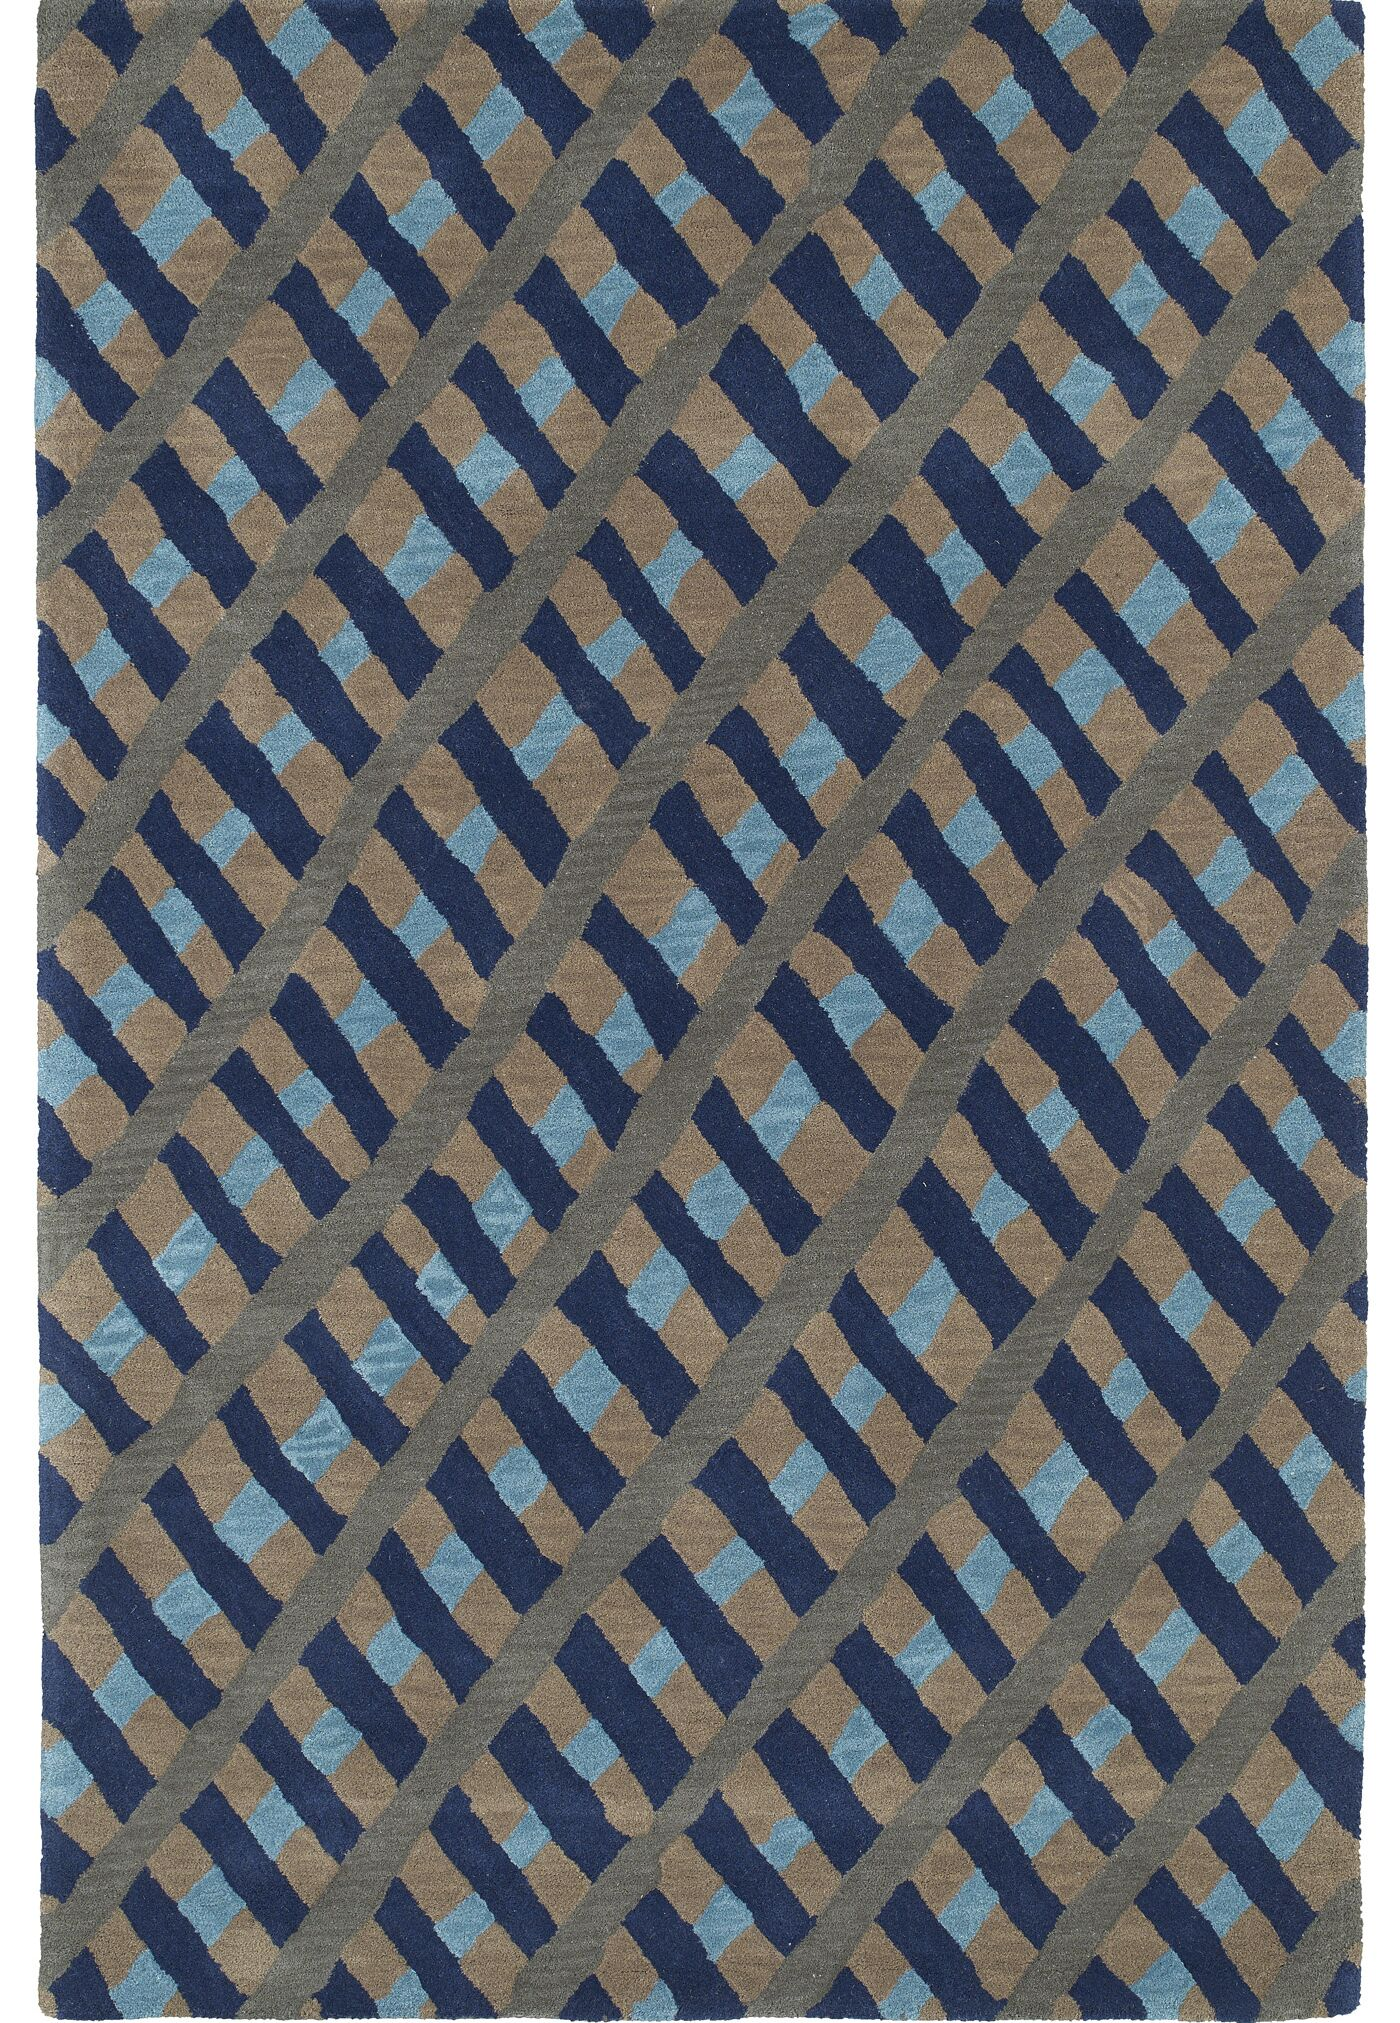 Schafer Hand Tufted Blue/Brown Area Rug Rug Size: Rectangle 5' x 7'9